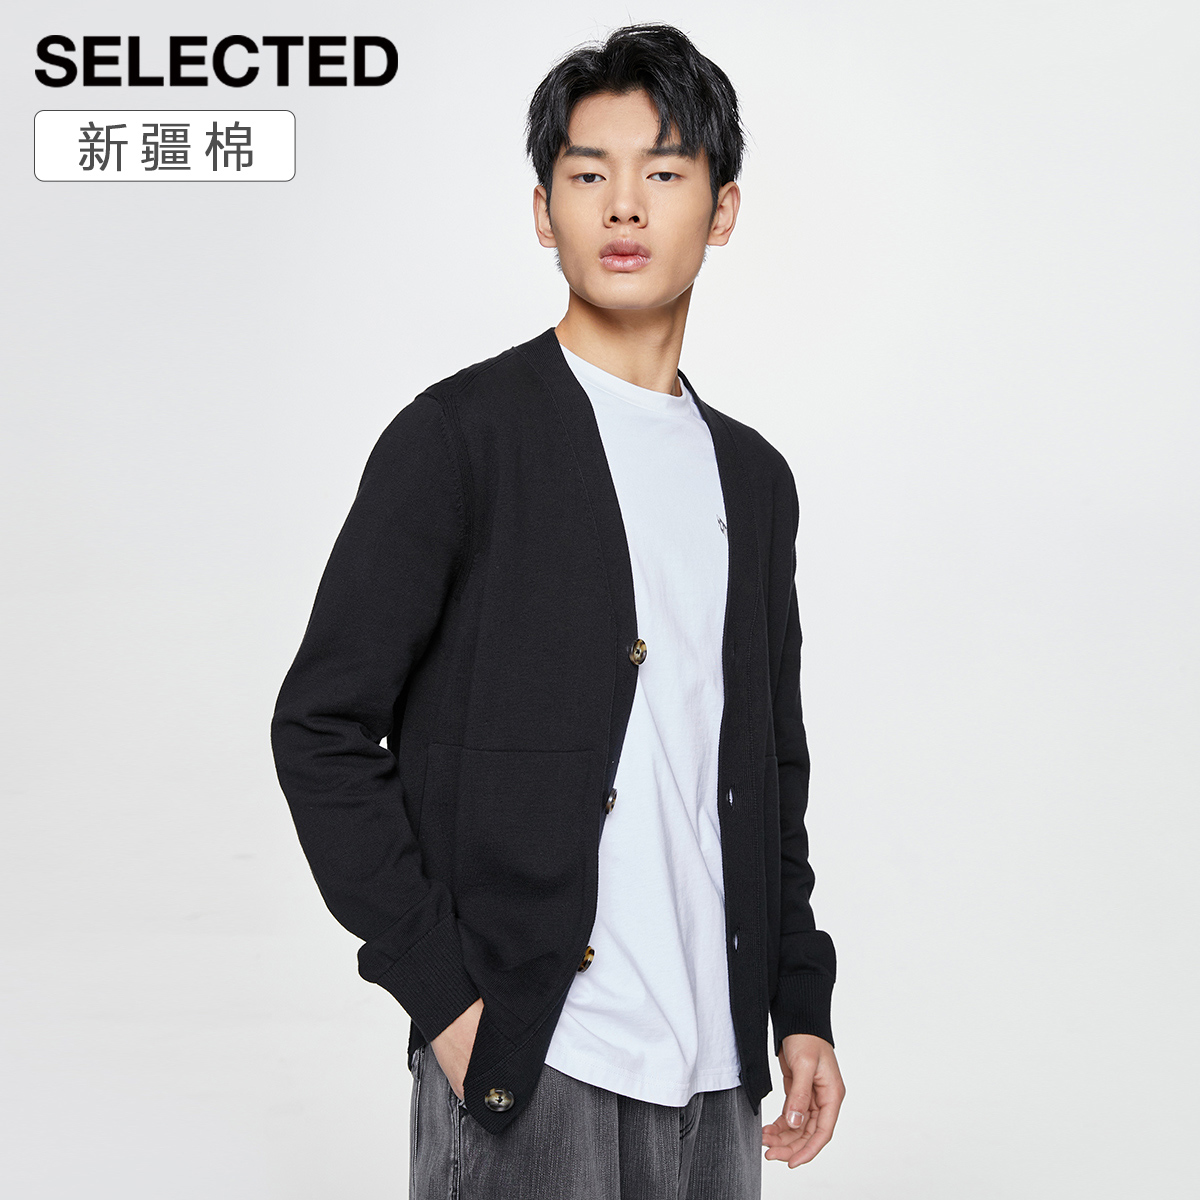 Xinjiang cotton SELECTED thinkleide male V collar buckle long sleeve solid color knit sweater R421124019